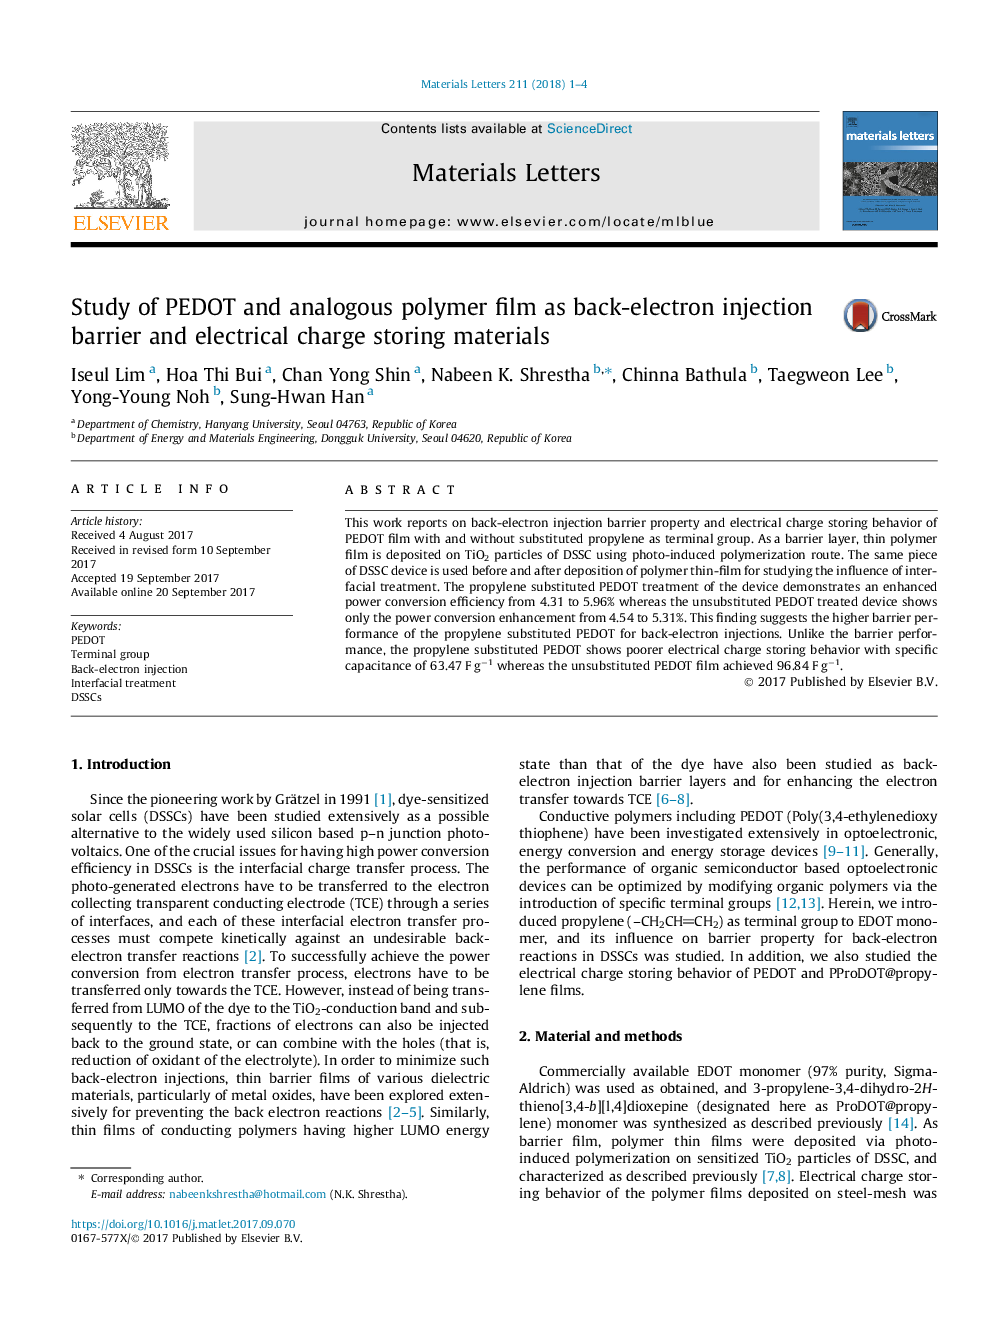 Study of PEDOT and analogous polymer film as back-electron injection barrier and electrical charge storing materials